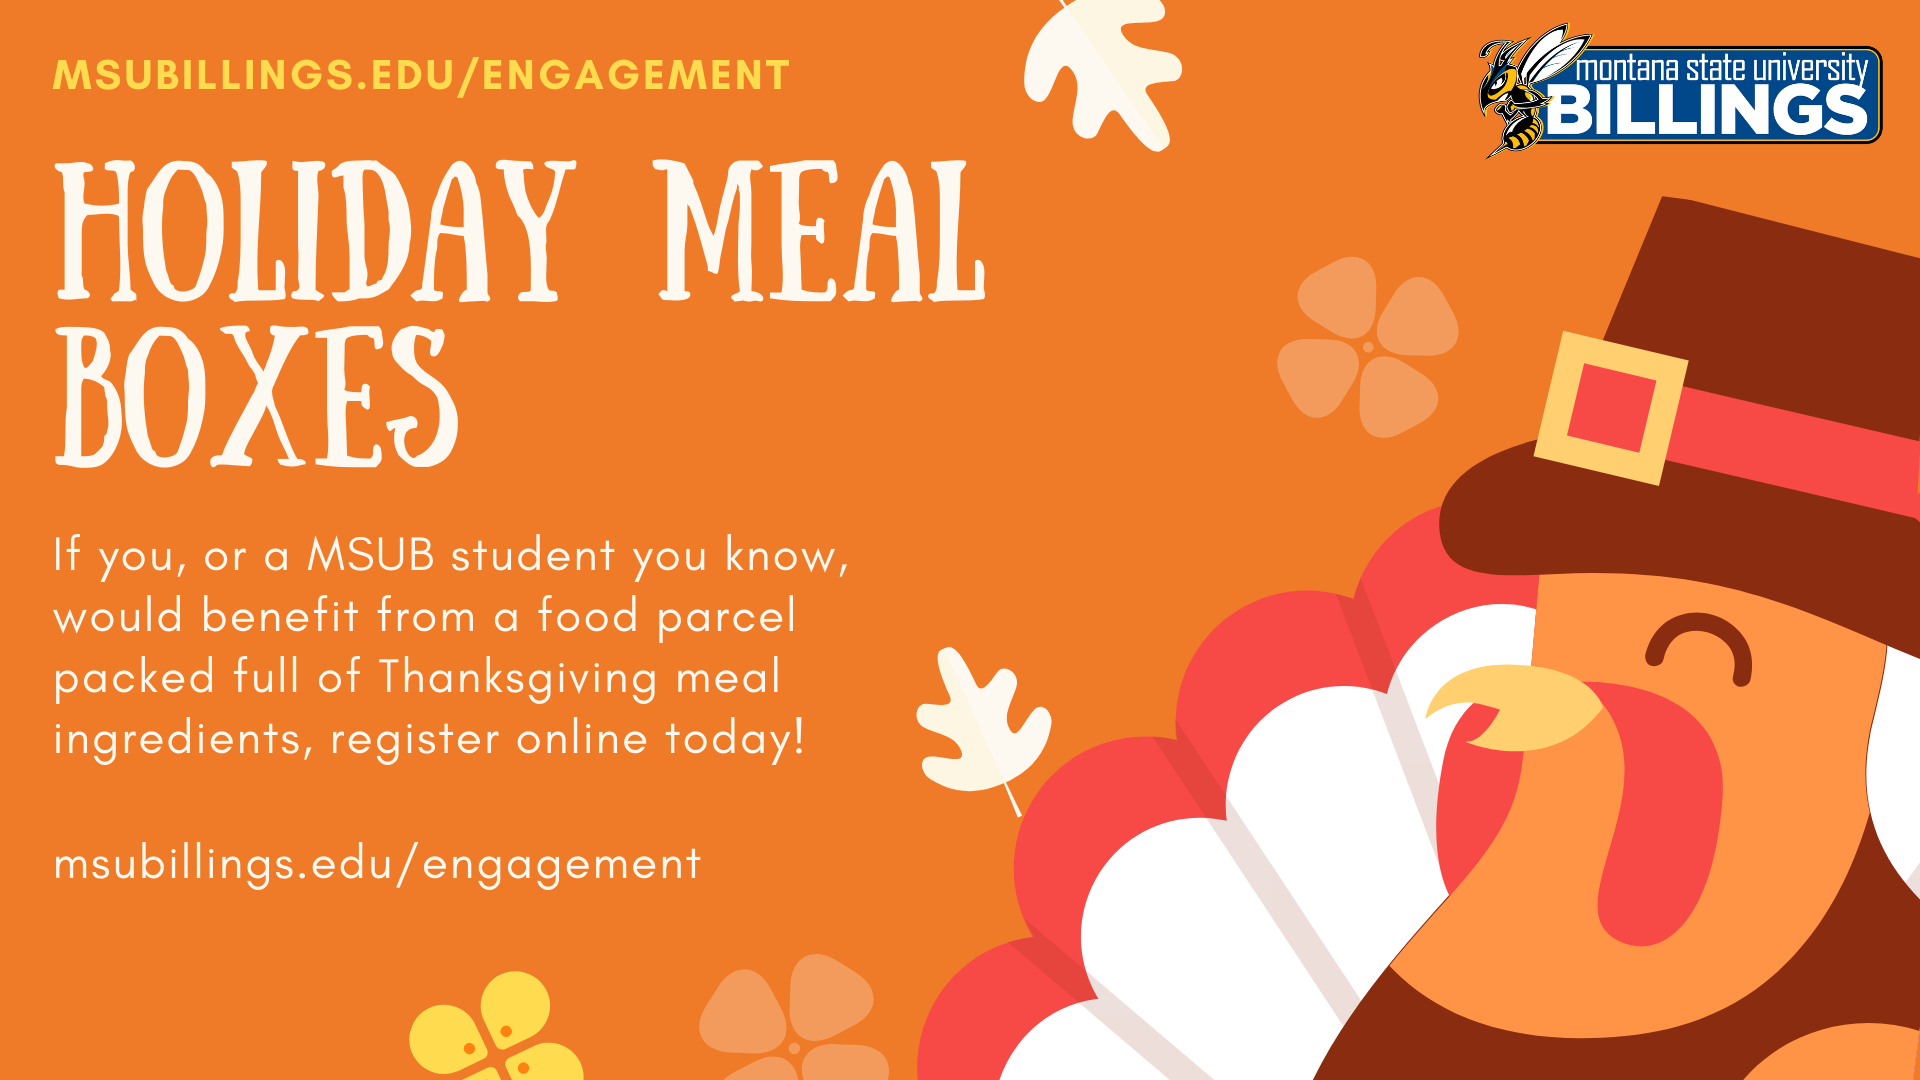 MSUB HOLIDAY MEAL BOXES IF YOU OR A MSUB STUDENT YOU KNOW WOULD BENEFIT FROM A FOOD PARCEL PACKED FULL OF THANKSGIVING MEAL INGREDIENTS, REGISTER ONLINE TODAY! MSUBILLINGS.EDU/ENGAGEMENT